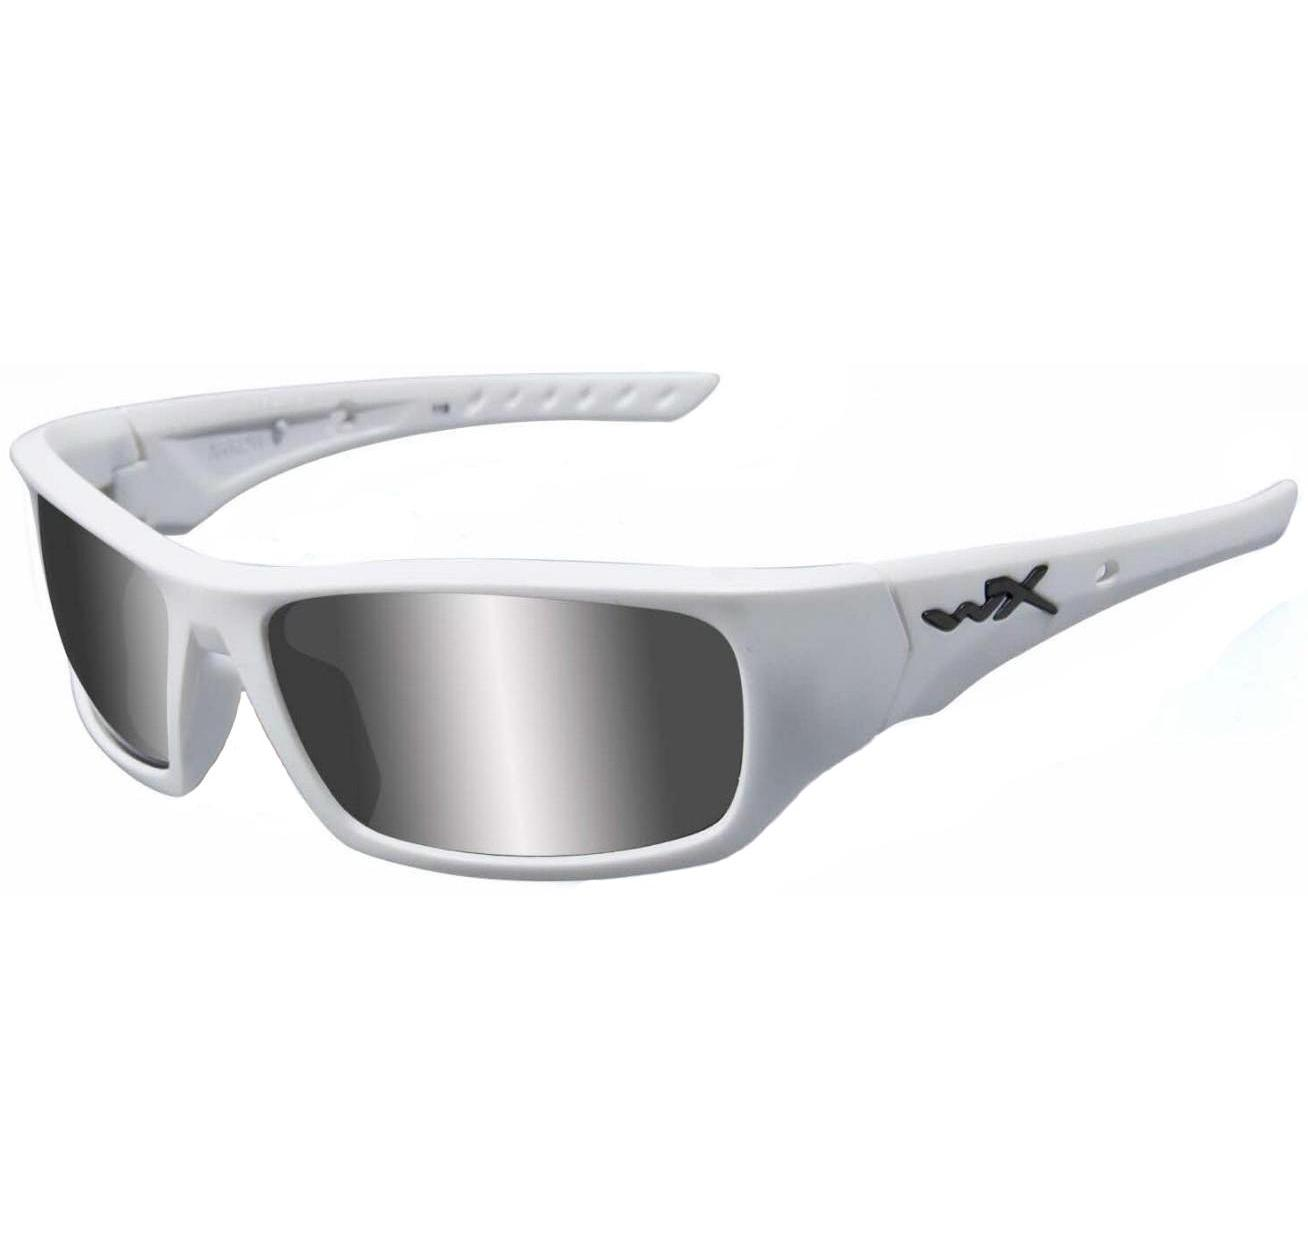 d3305bb8b63 Buy Wiley-x Arrow Polarized Matte White silver Flash Lens Sunglass ...